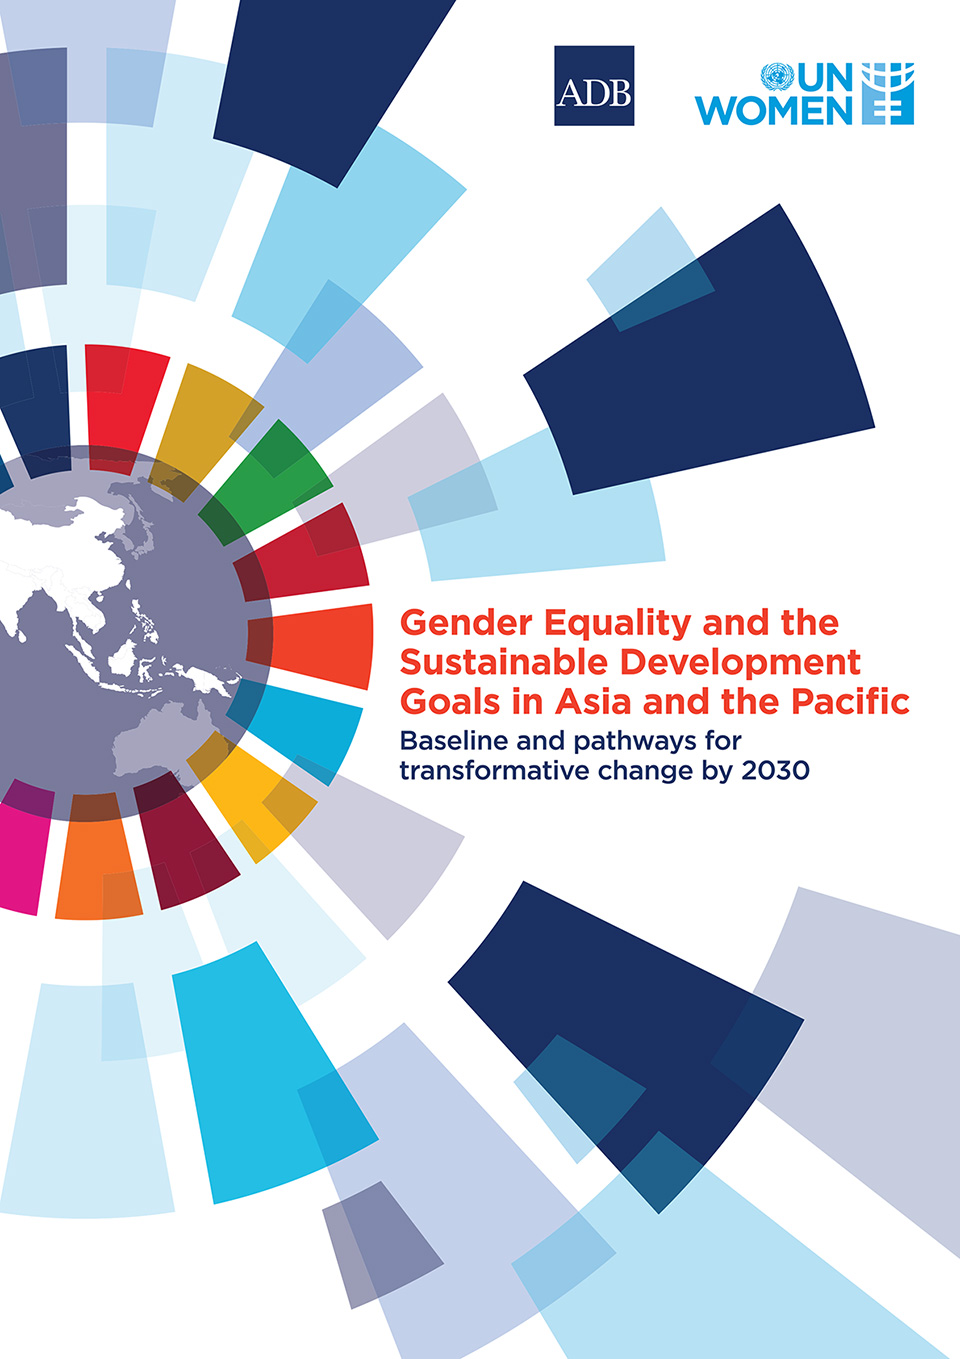 Gender Equality and the Sustainable Development Goals in Asia and the Pacific